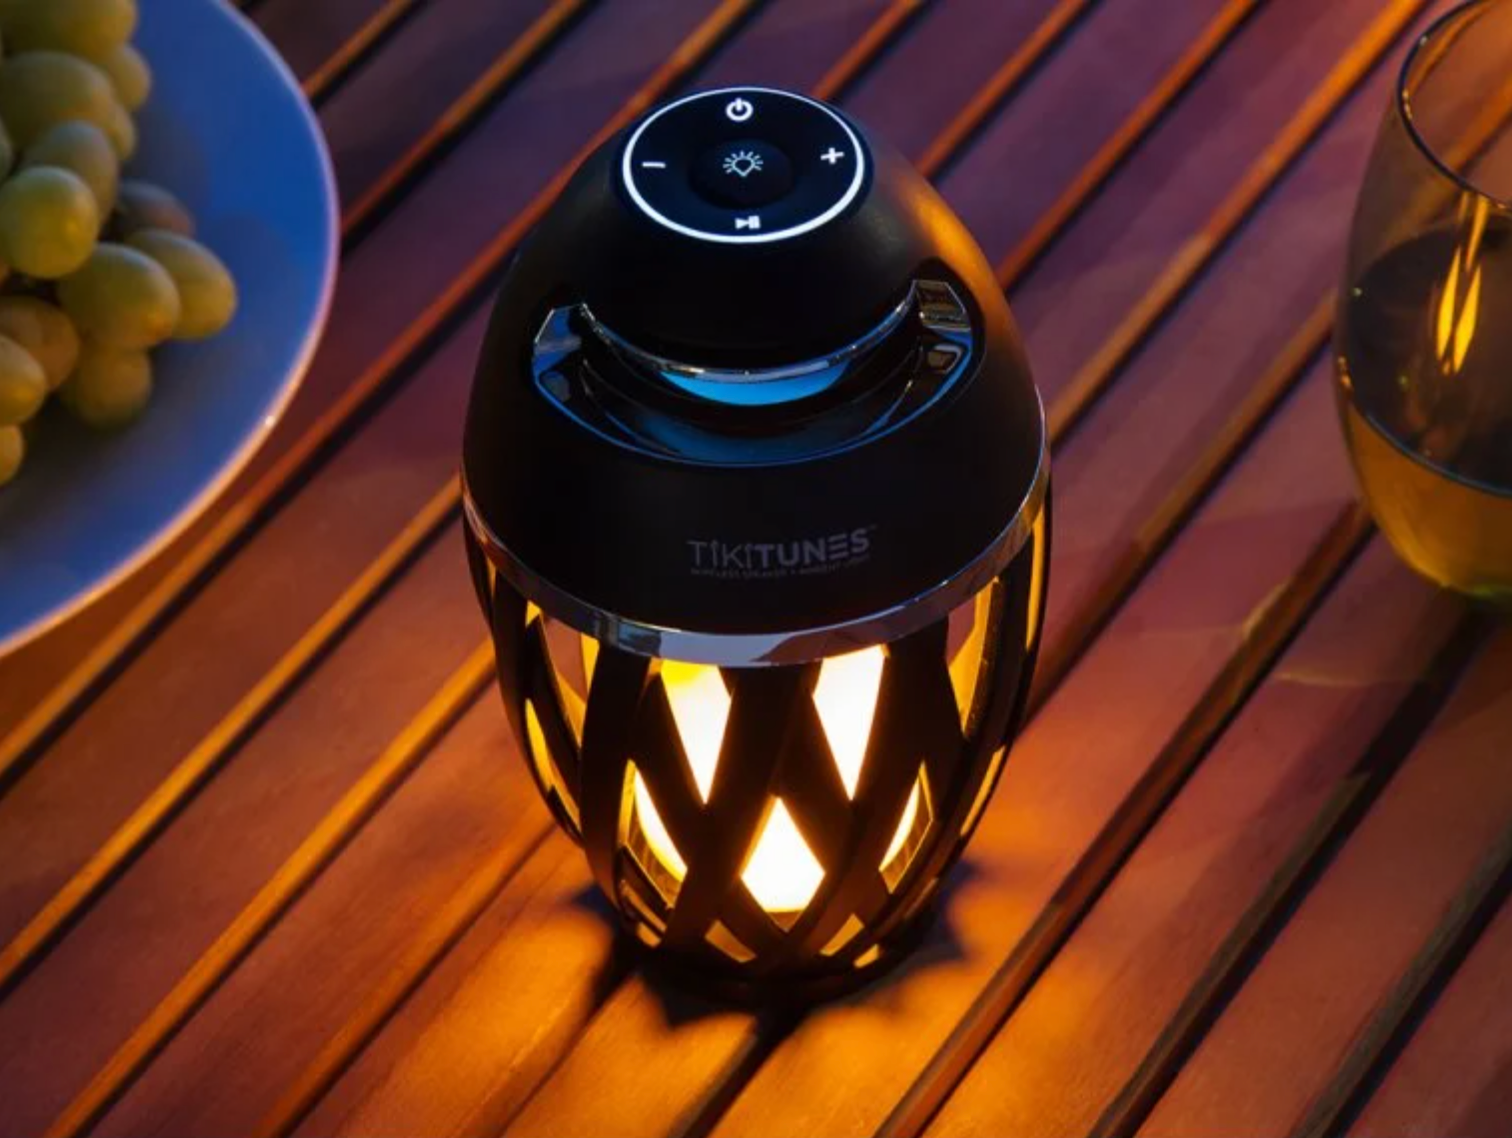 tikitunes speaker with the light turned on